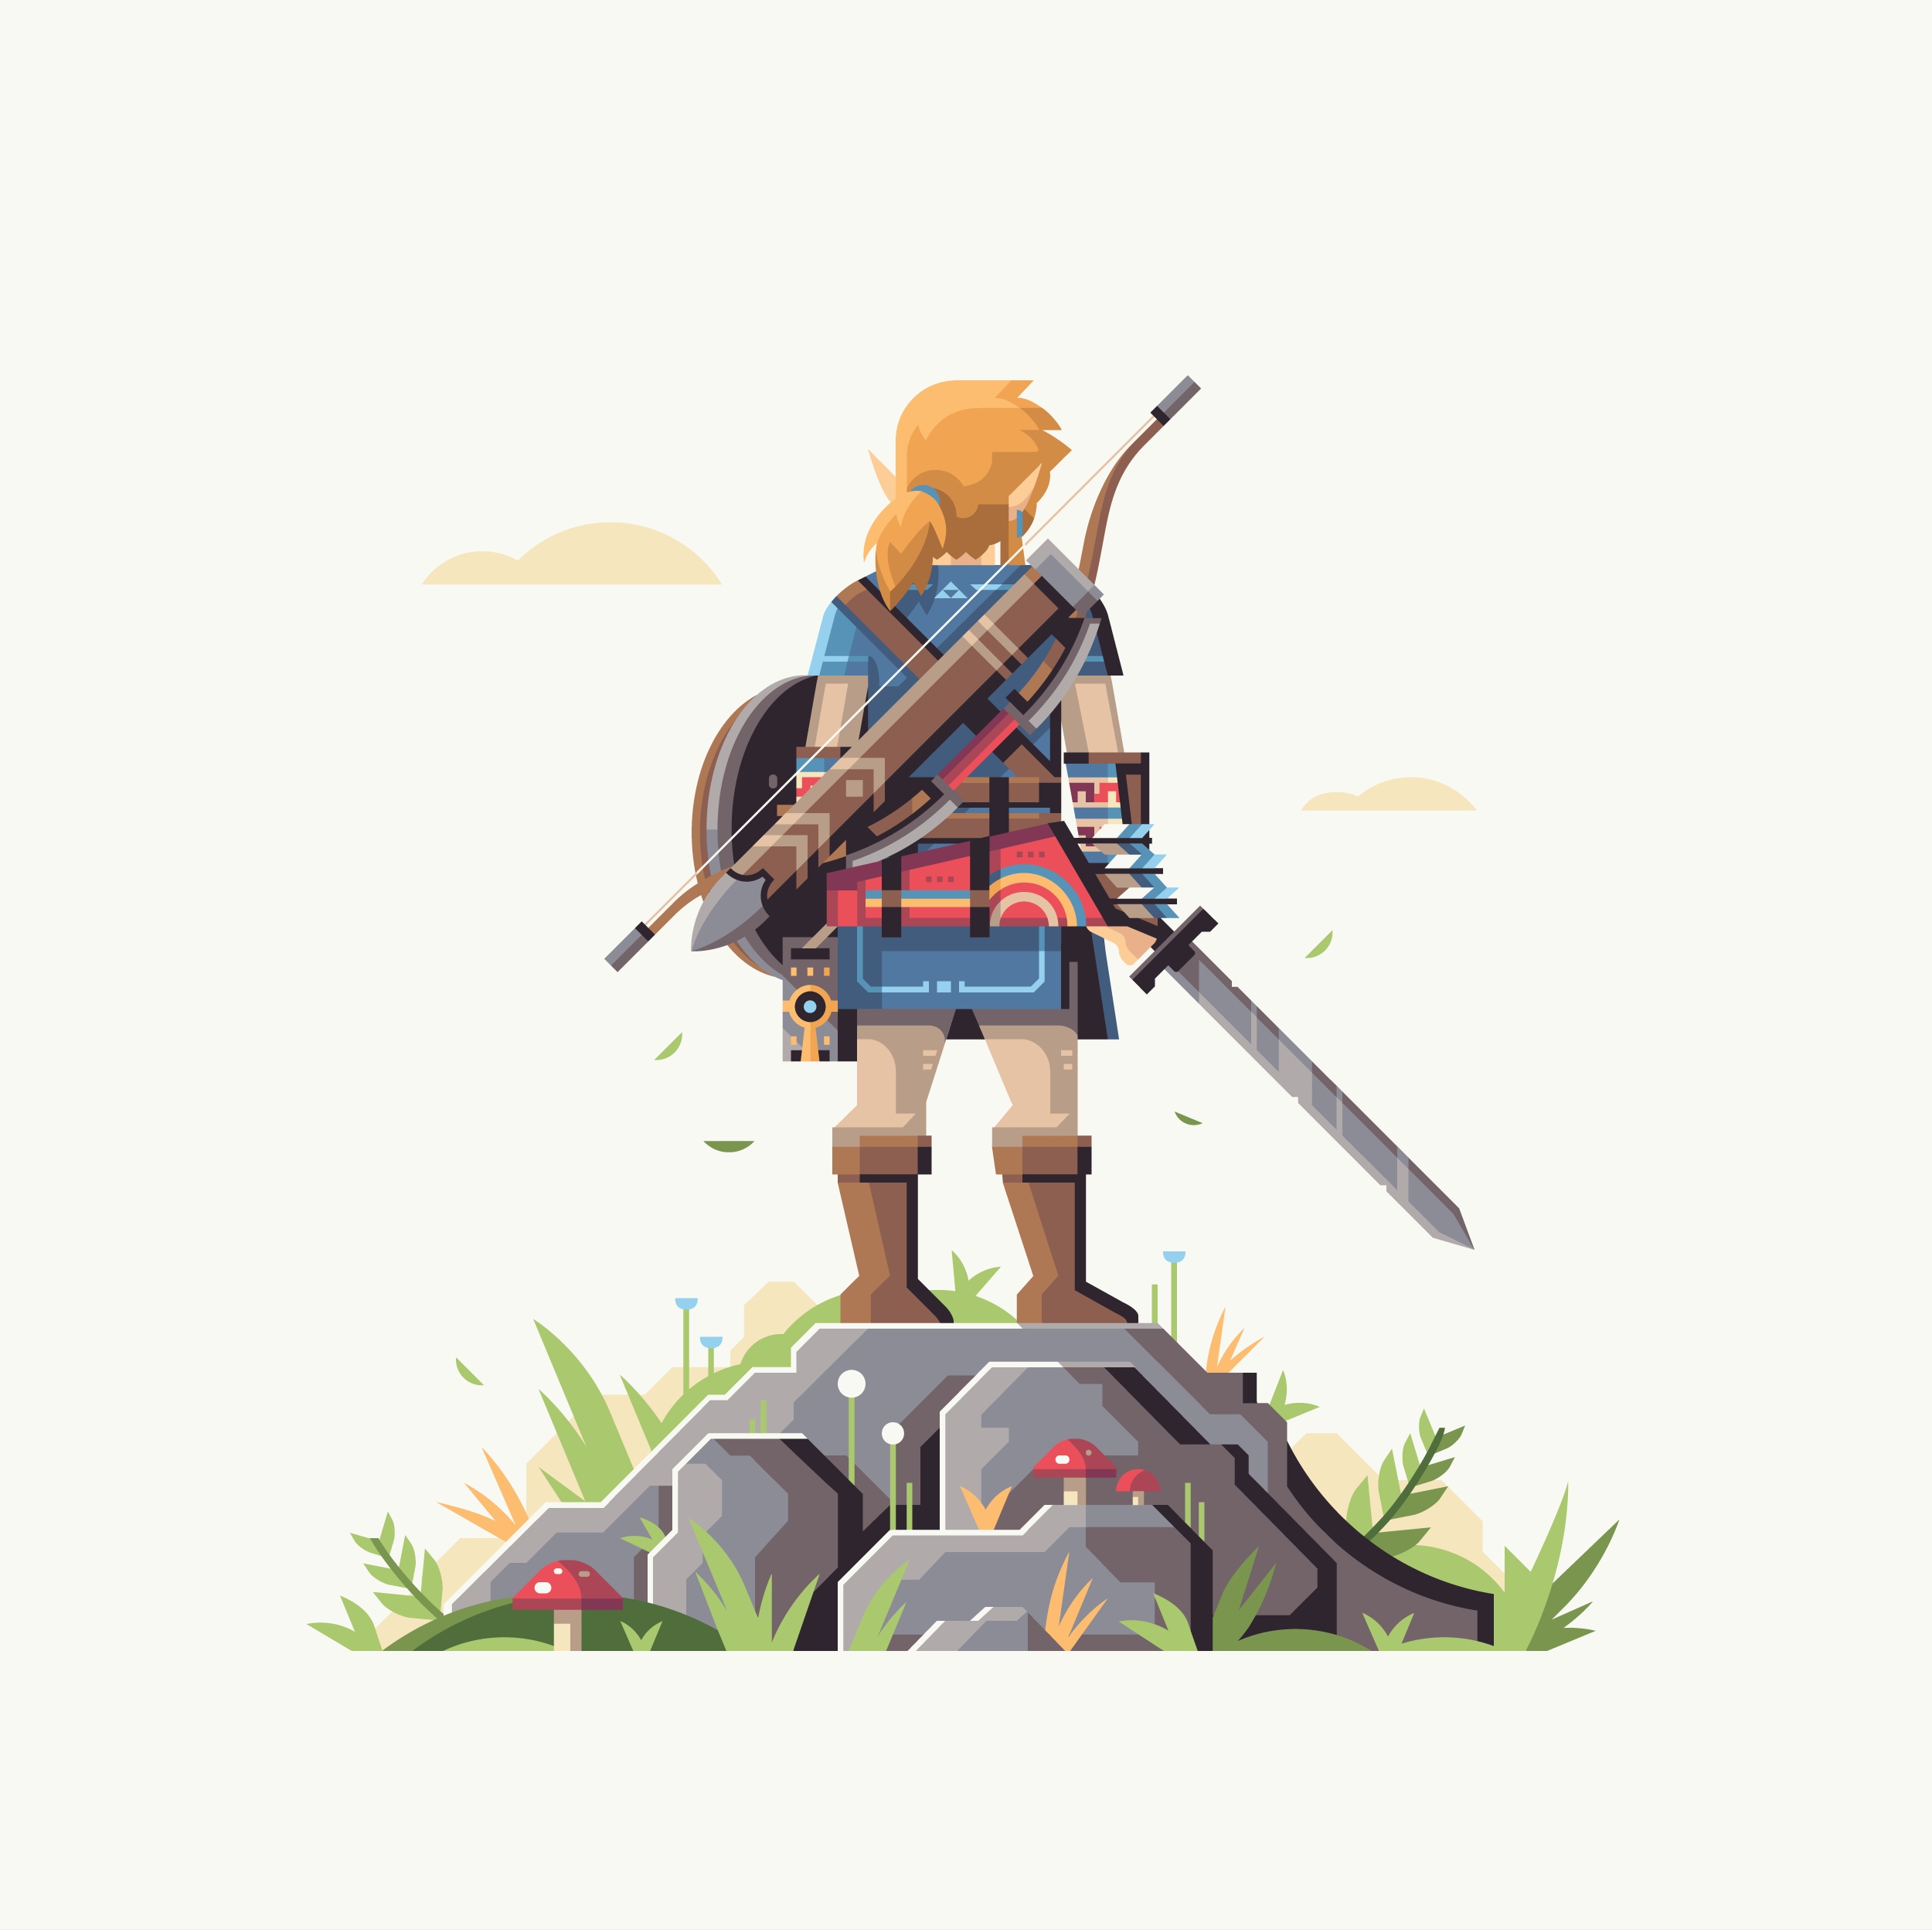 Wild series by Matt Anderson. Inspired by Zelda Breath of the Wild. Hero of the Wild (Link).